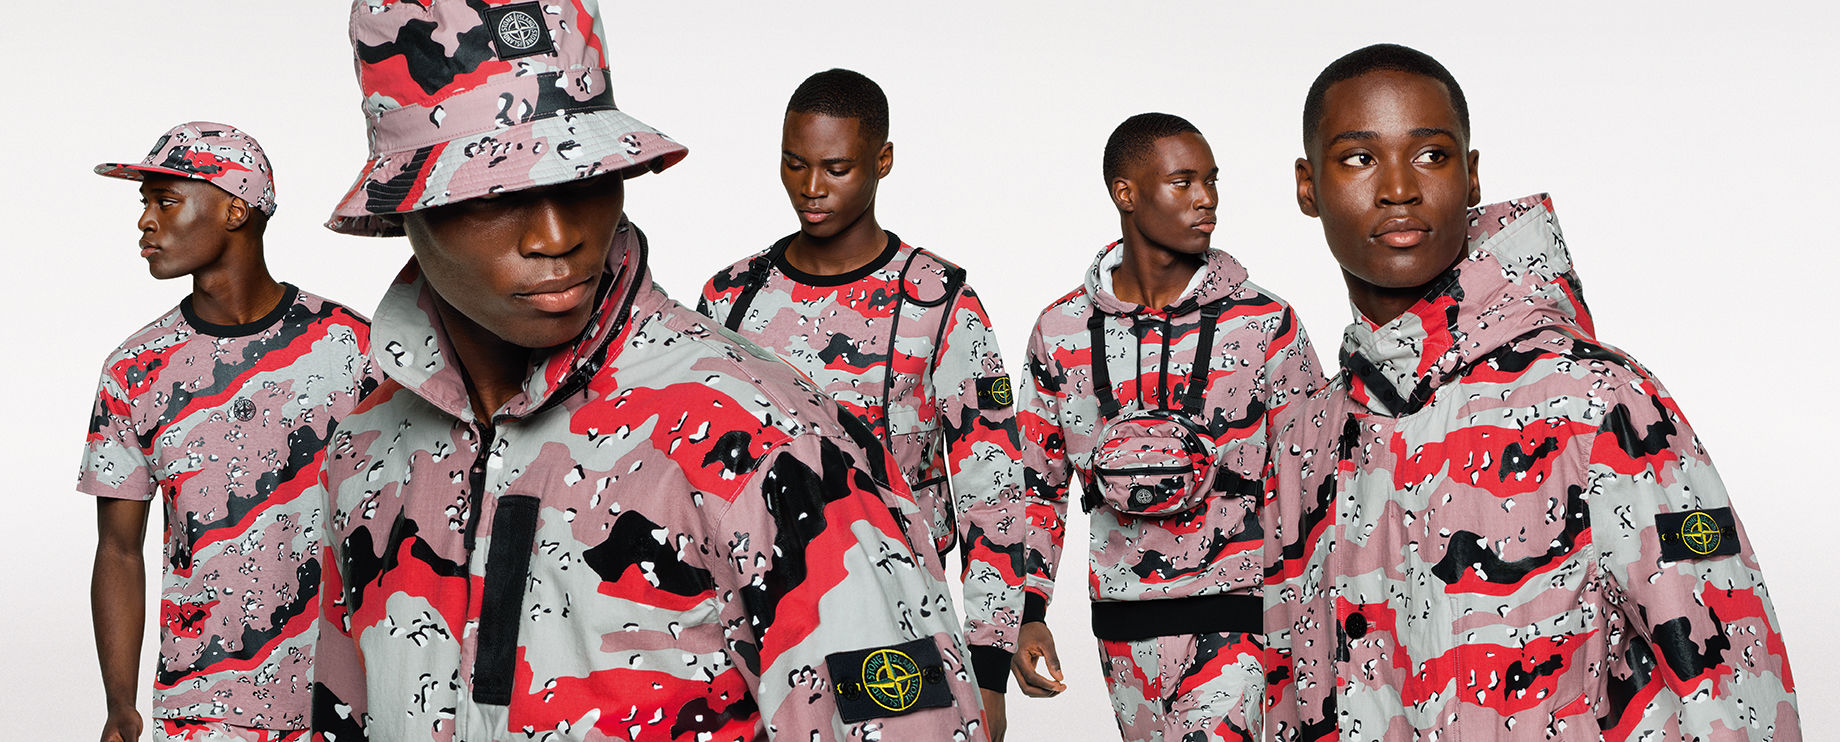 Five shots of the same model, wearing different styles of sweatshirts, pants, jackets, hats and a t shirt, all in the same pink, red and gray camouflage print.